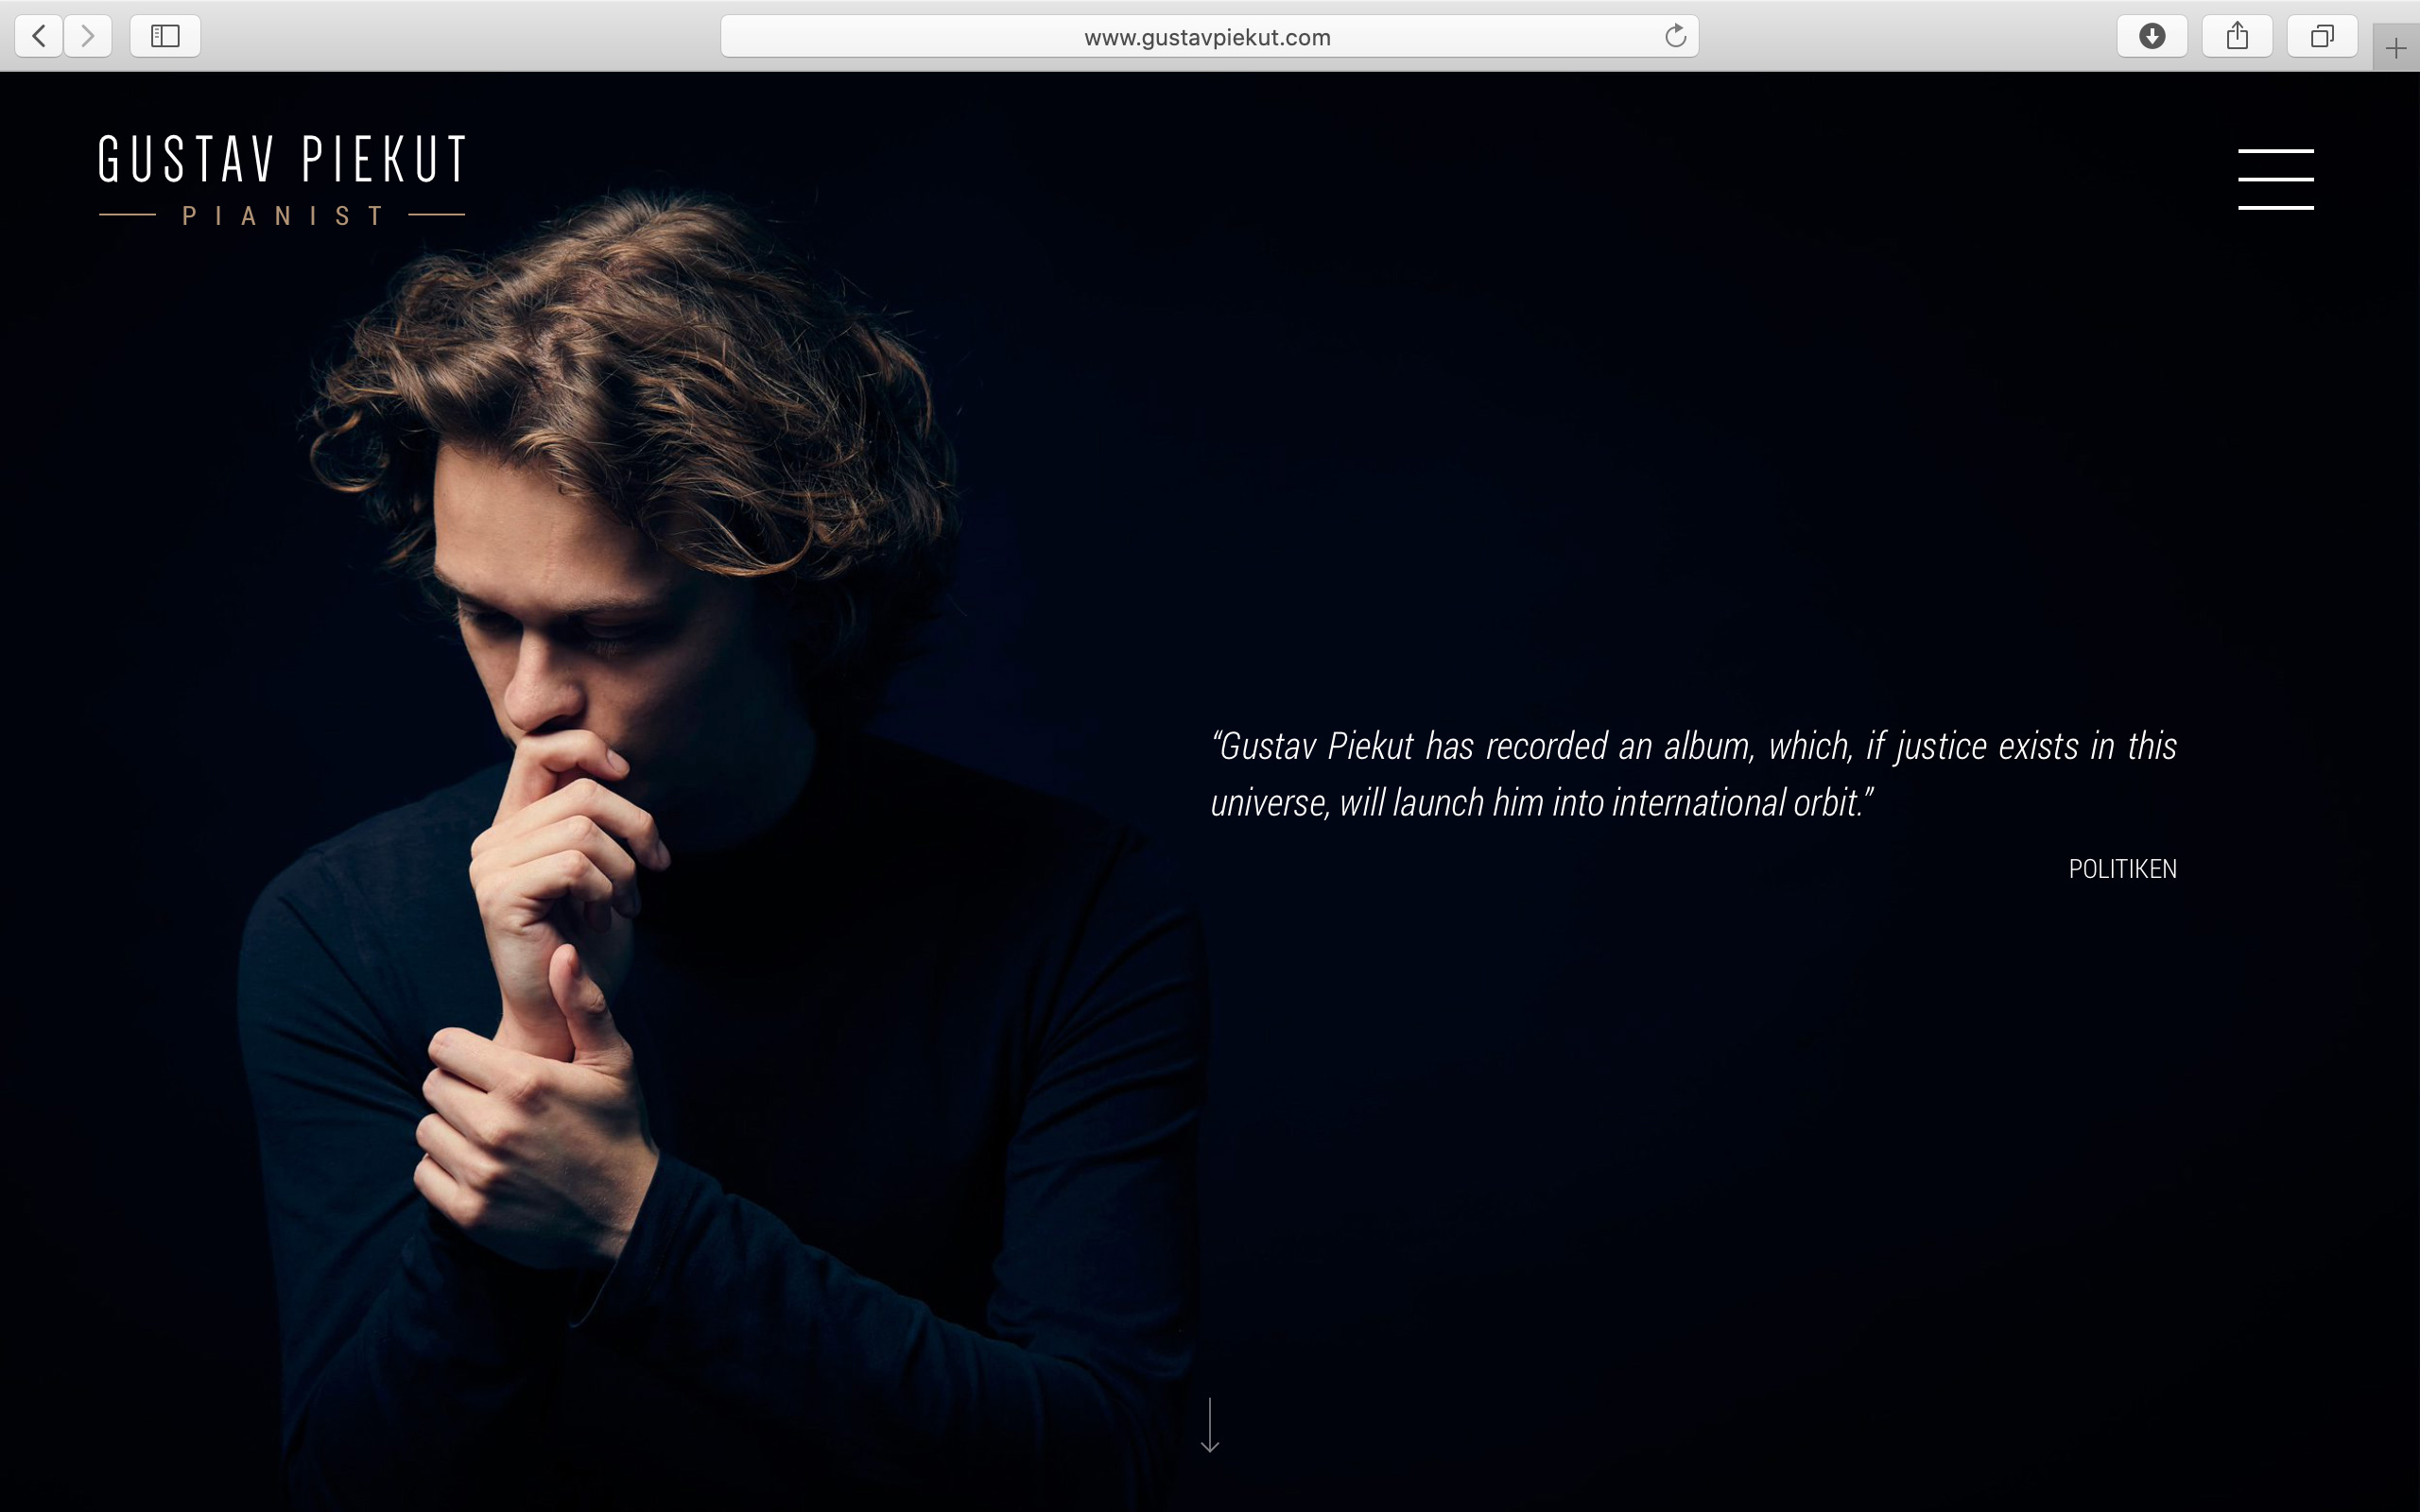 Kilmulis design - Gustav Piekut - website 03